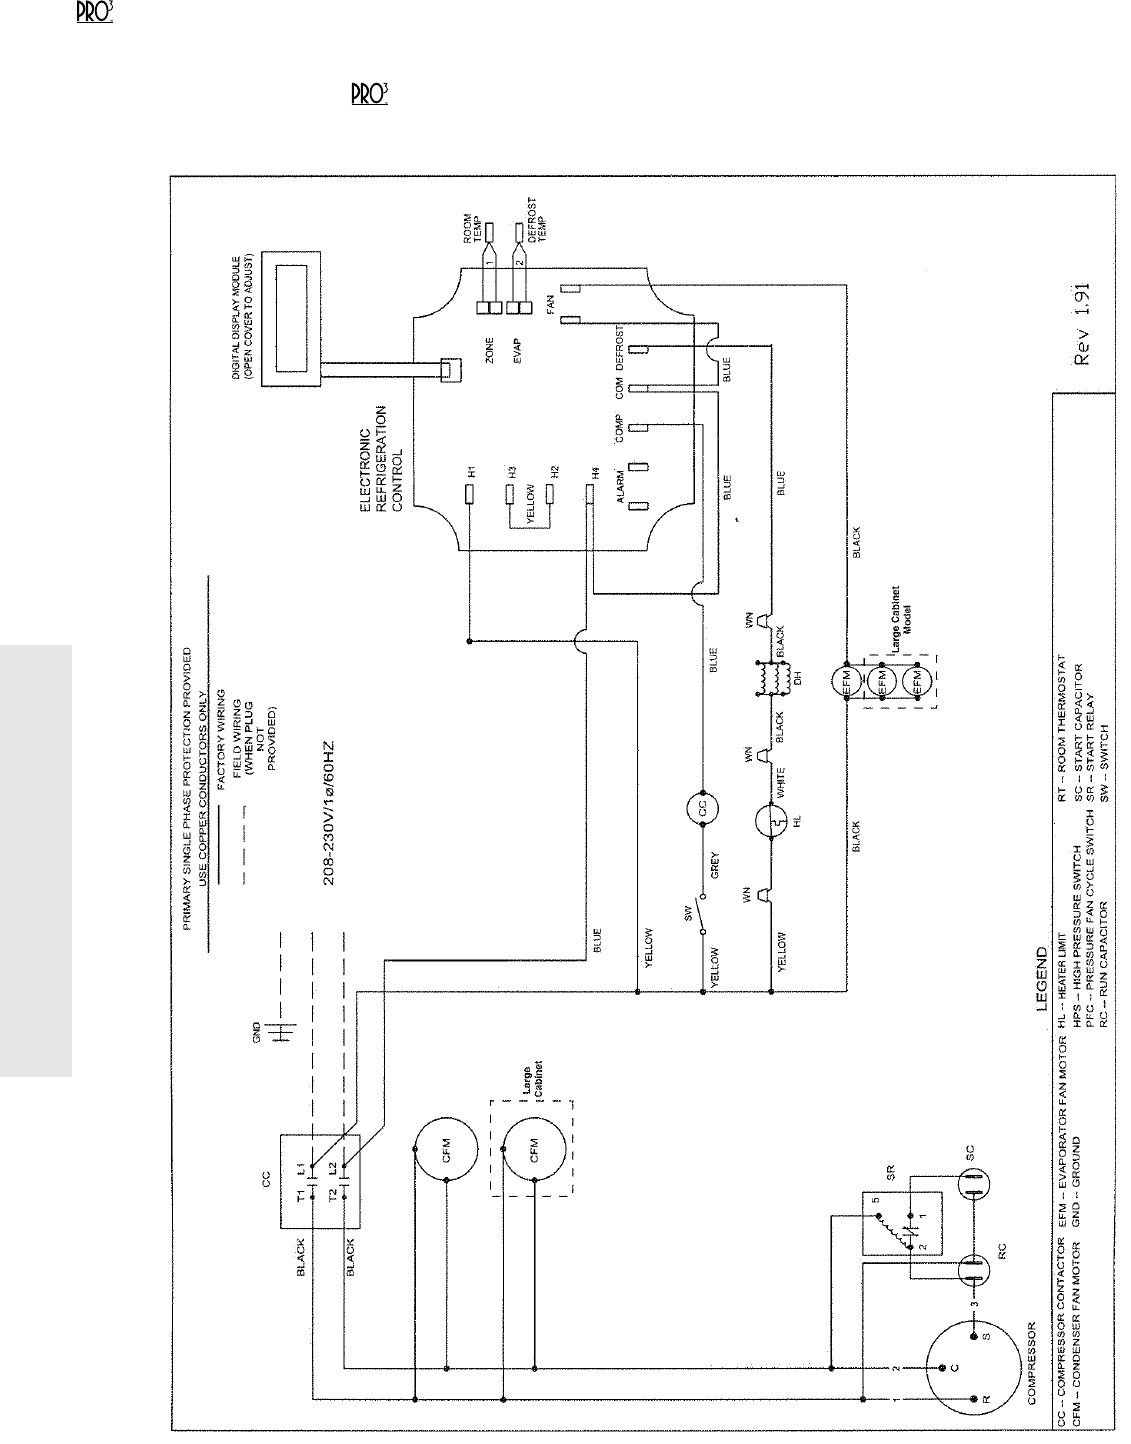 Heatcraft Evaporator Wiring Diagram 220 Library Of Wiring Diagram In Heatcraft Evaporator Wiring Diagram Diagram Wire Electronics Circuit